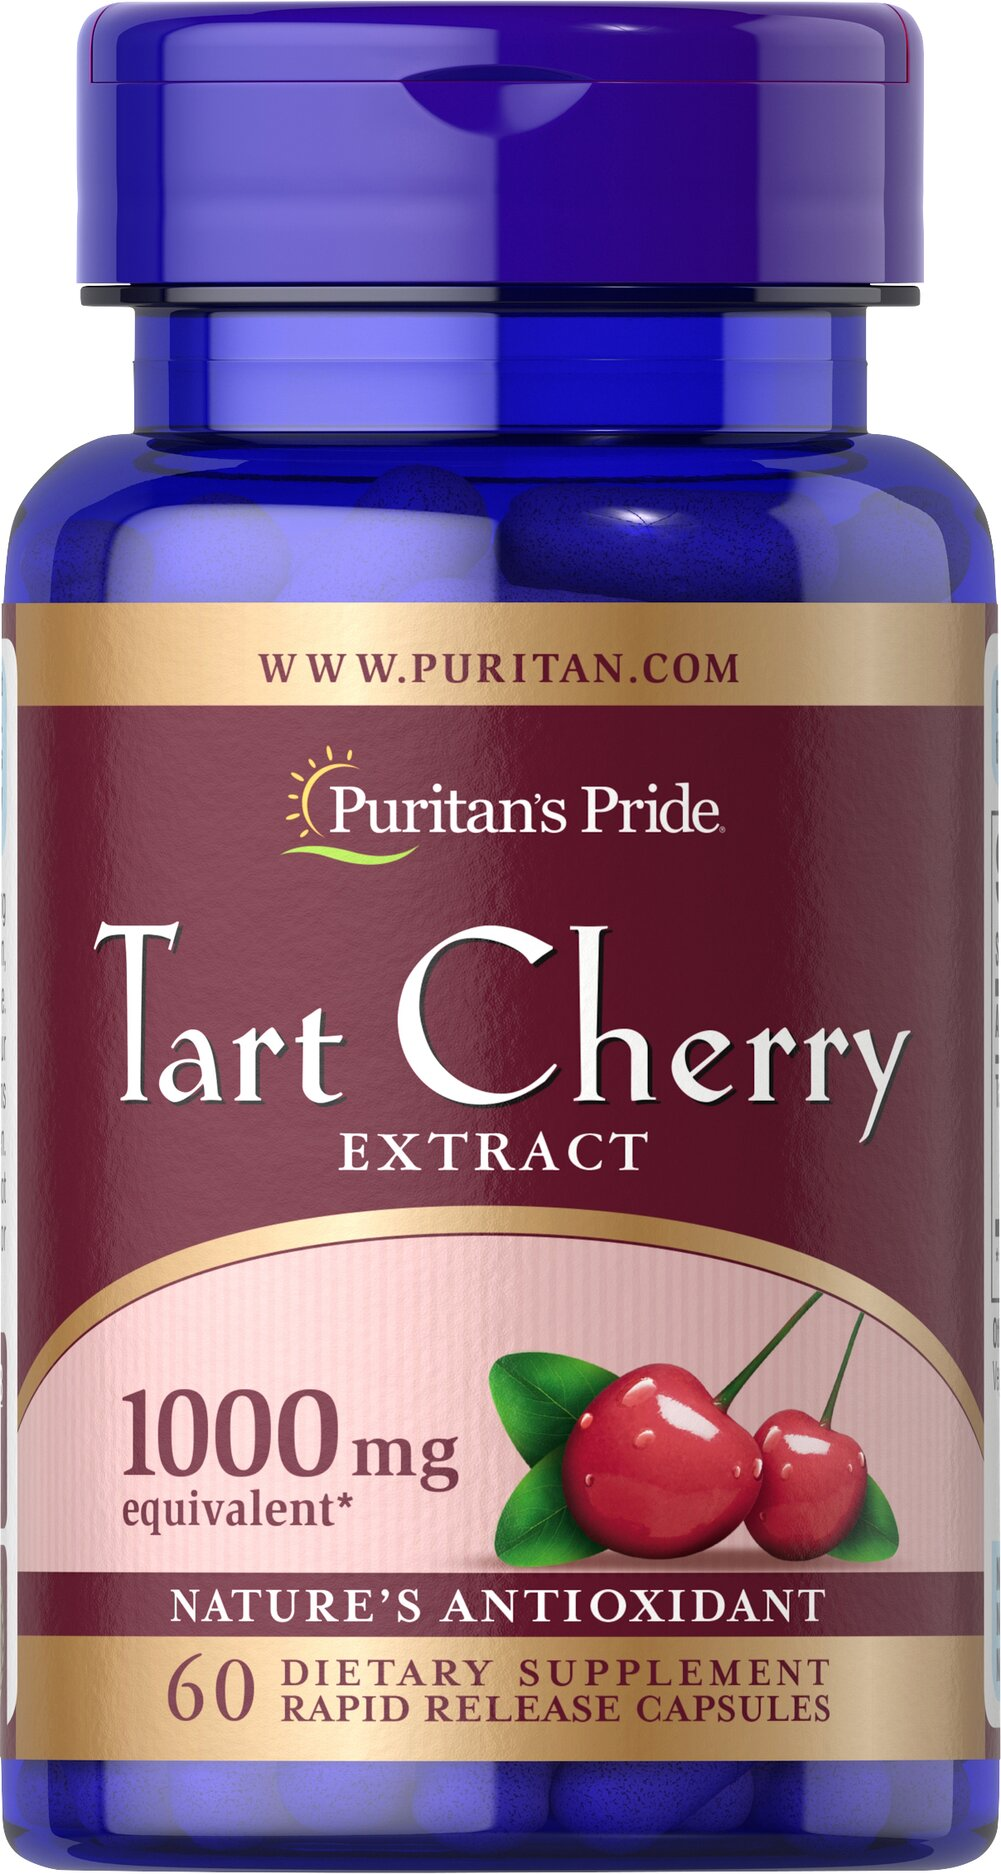 Tart Cherry Extract 1000 mg <p>Cherries are known for their natural content of antioxidants and other beneficial components. Now you can easily obtain the benefits of Tart Cherry in our convenient Tart Cherry capsules. Each serving contains a 4:1 extract of Tart Cherry to help retain the most important constituents.</p> 60 Capsules 1000 mg $14.99